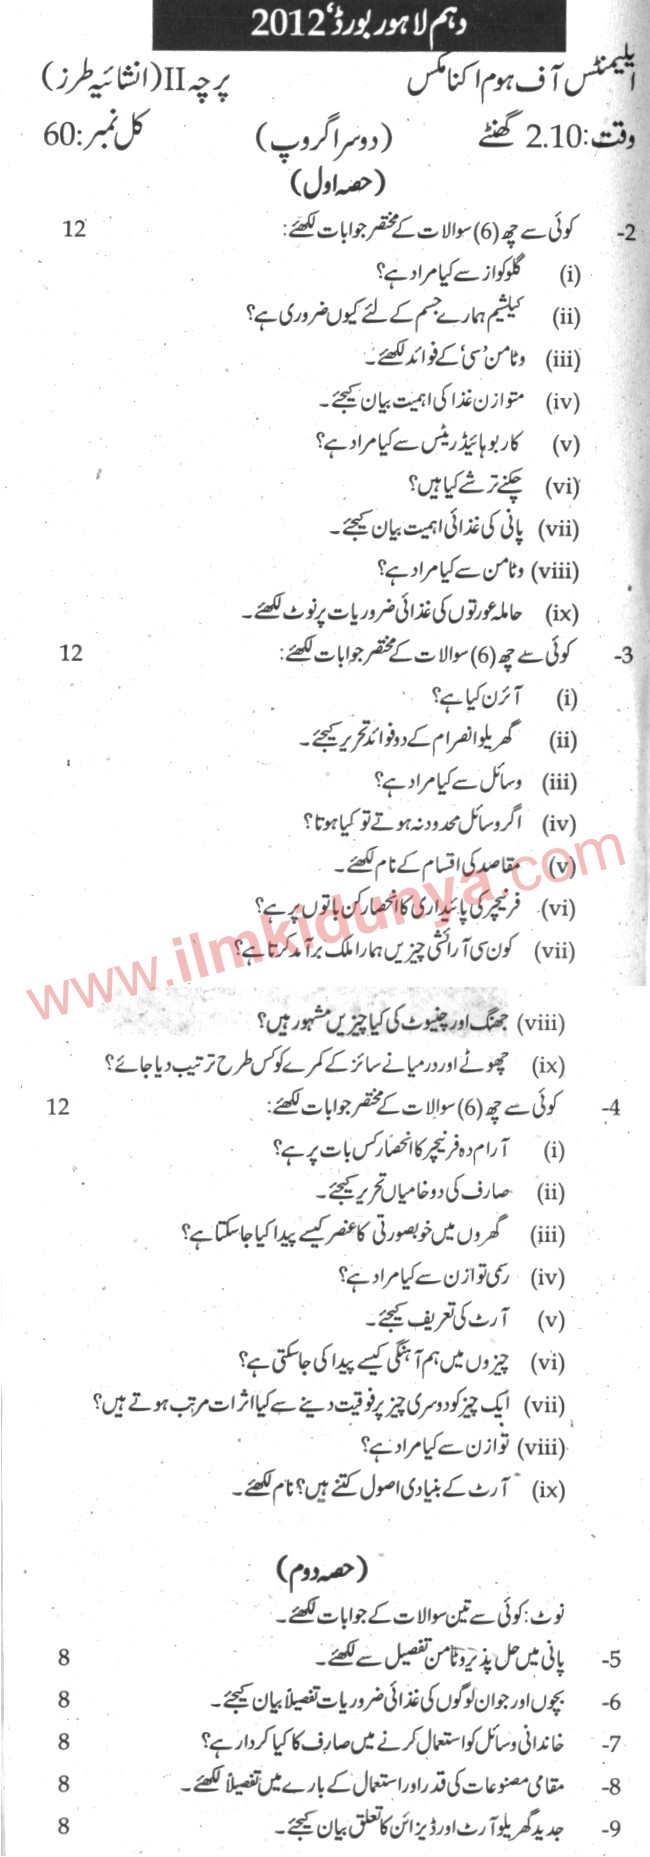 Lahore Board Home Economics 10th Class Past Paper 2012